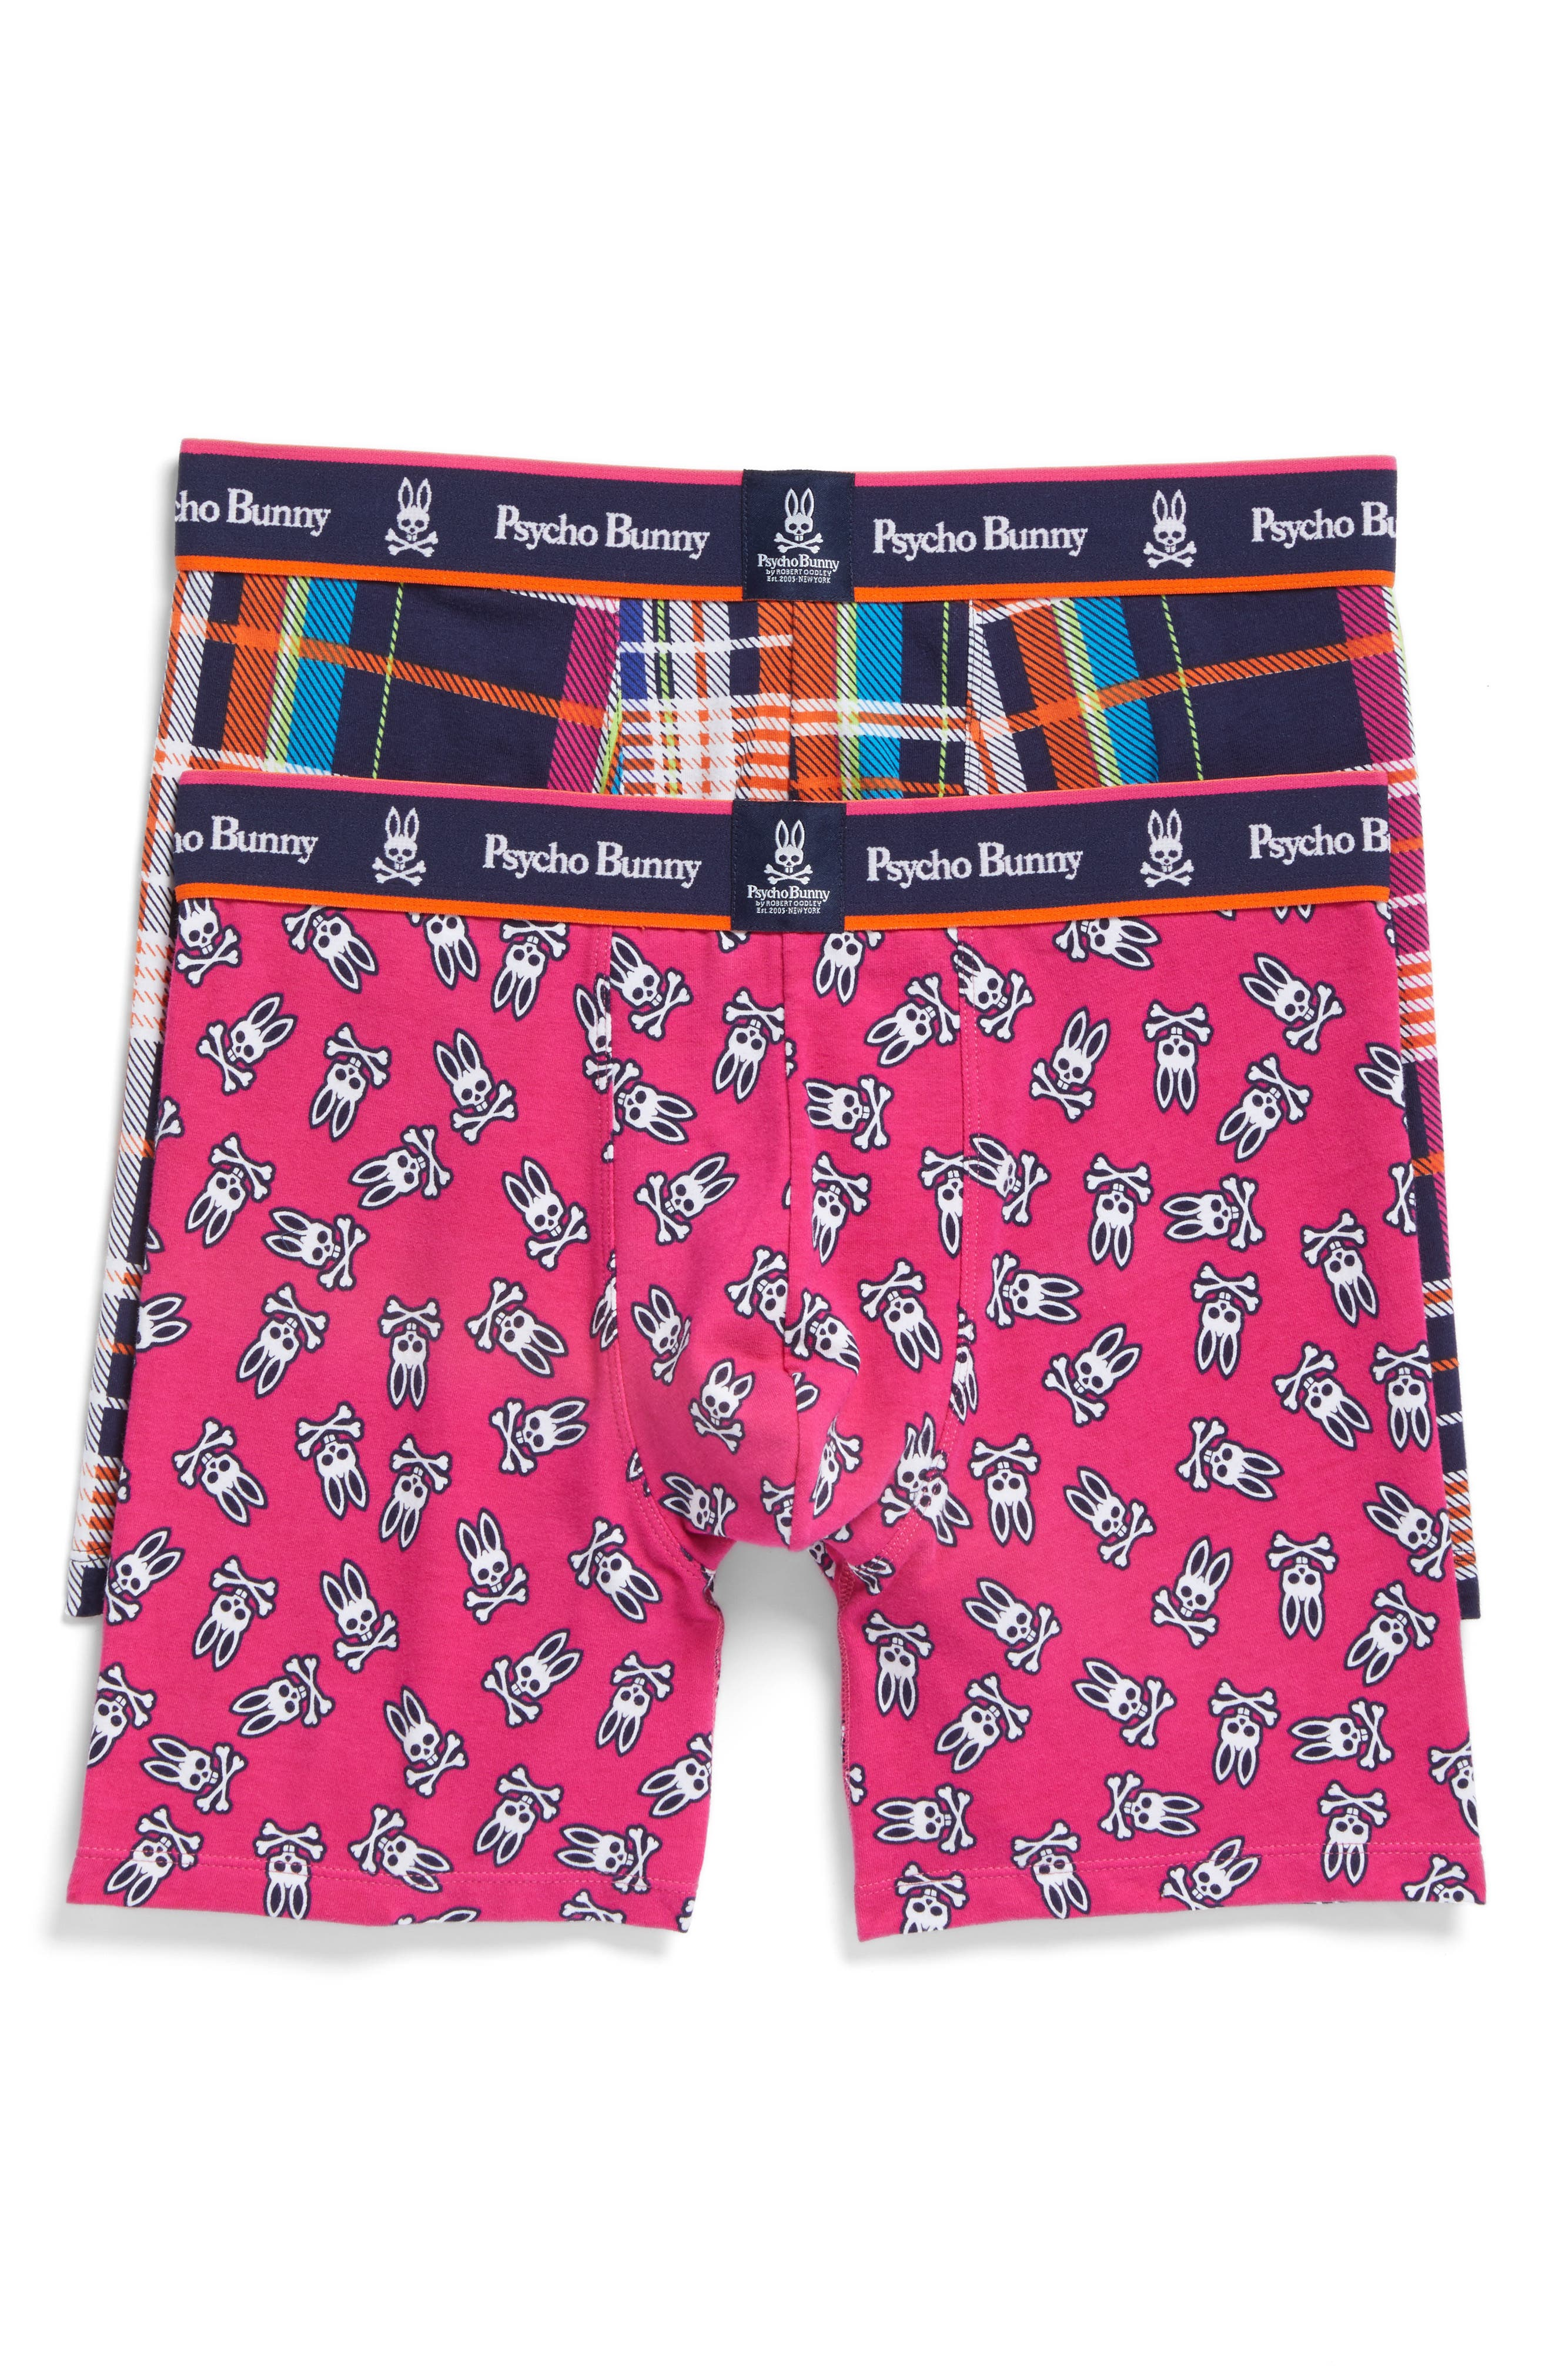 Psycho Bunny 2-Pack Boxer Briefs